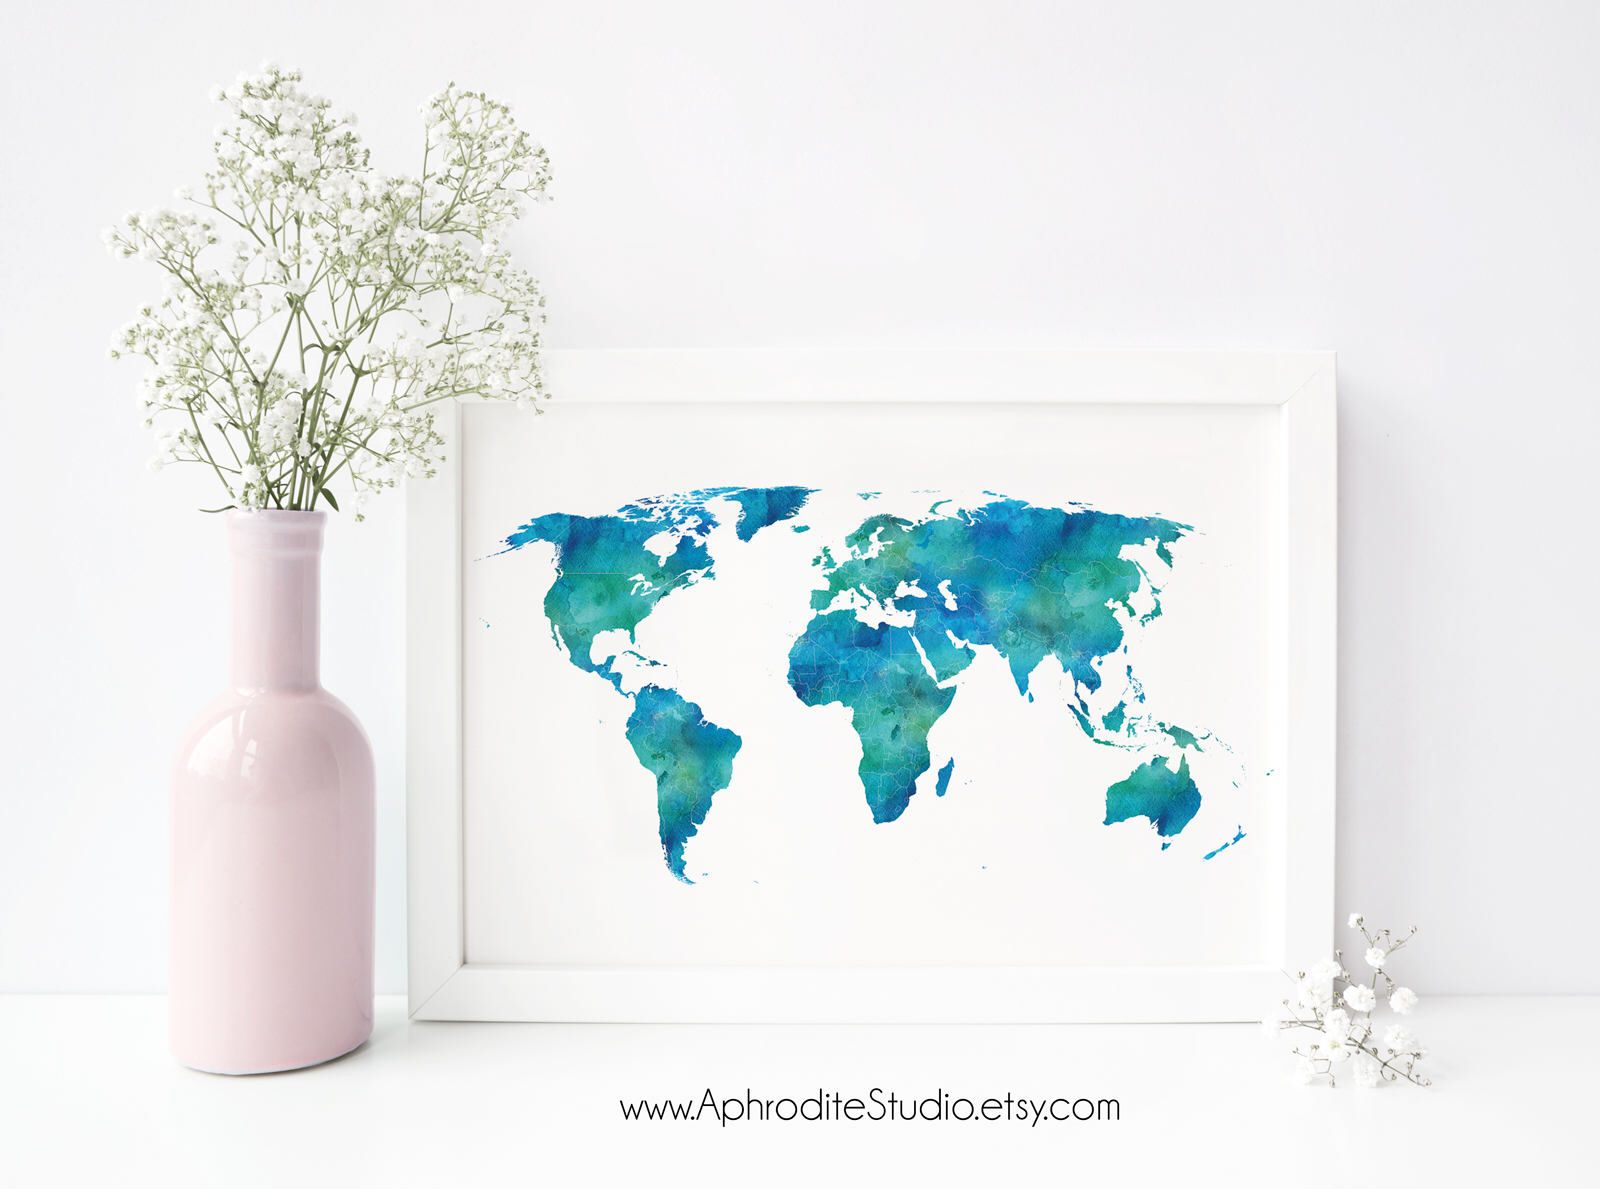 World map print 24x36 world printable poster travel decor world map print 24x36 world printable poster travel decor gift wedding guest bookworld gumiabroncs Image collections